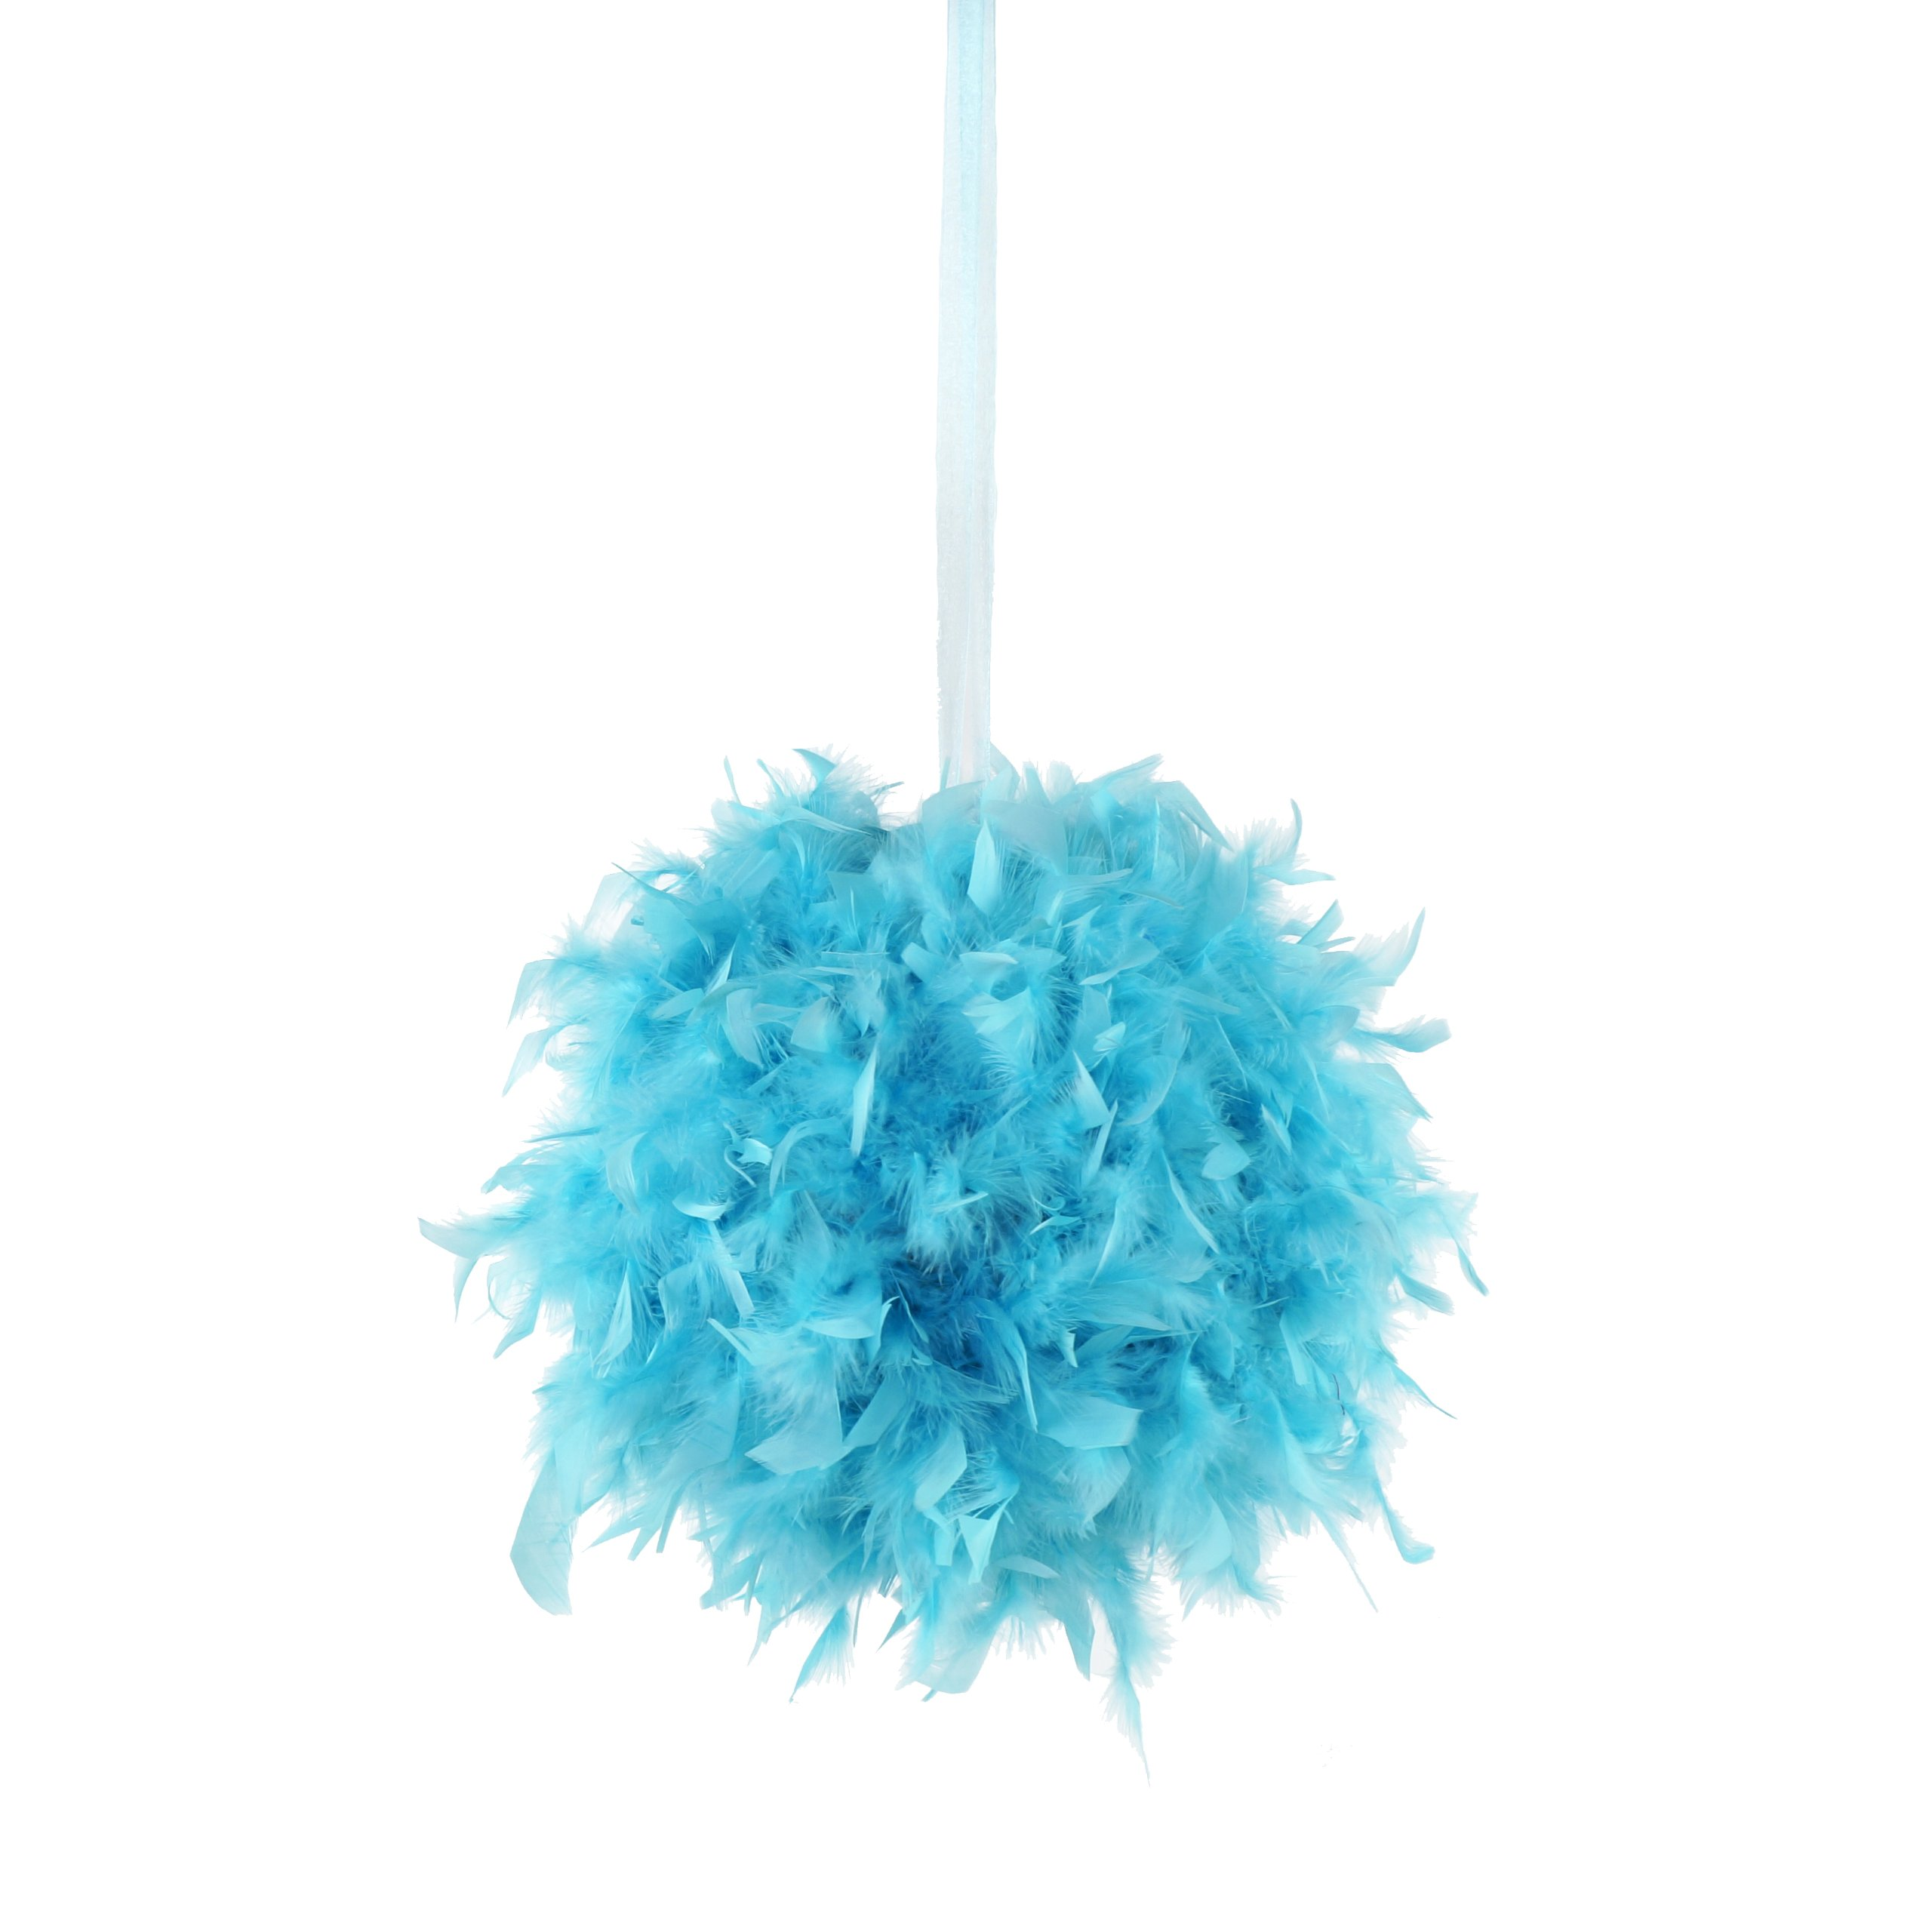 Zucker Feather (TM) - Chandelle Feather Pom Poms - Lt Turquoise